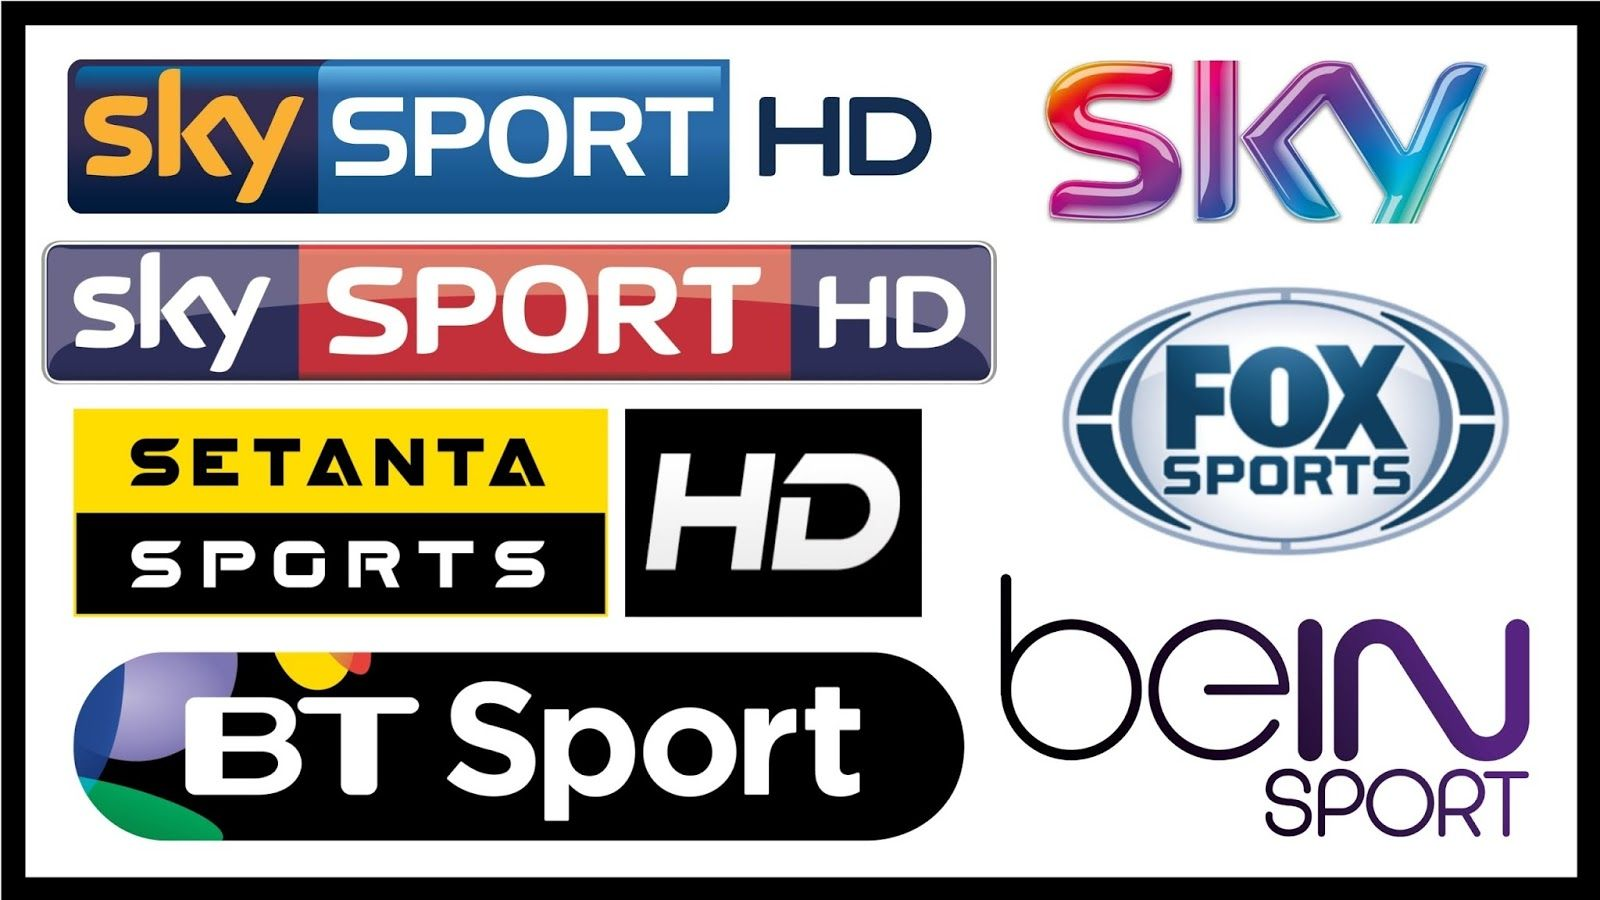 Bigfight Rugby Horseracing Big Game 51 Boxing Football Olympics Baseball Nba Cricket Hockey Mma Racing Soccer Cycling Tennis College Basketball Sports Channel Bein Sports Live Tv Streaming